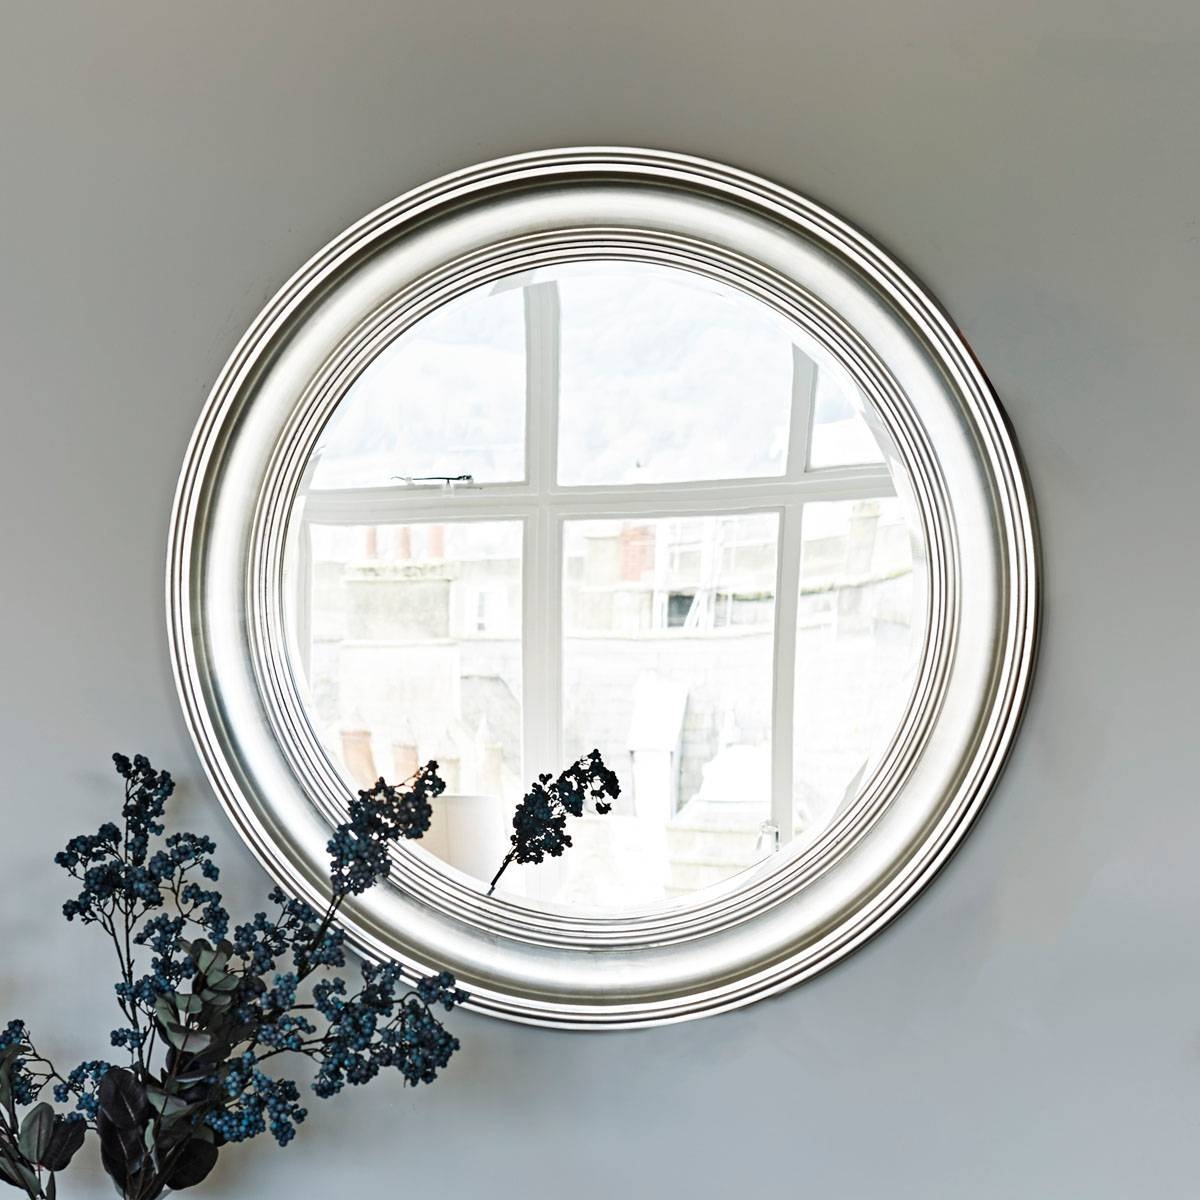 New England Mirror - Sliver Large | Brissi within Large Round Silver Mirrors (Image 12 of 15)